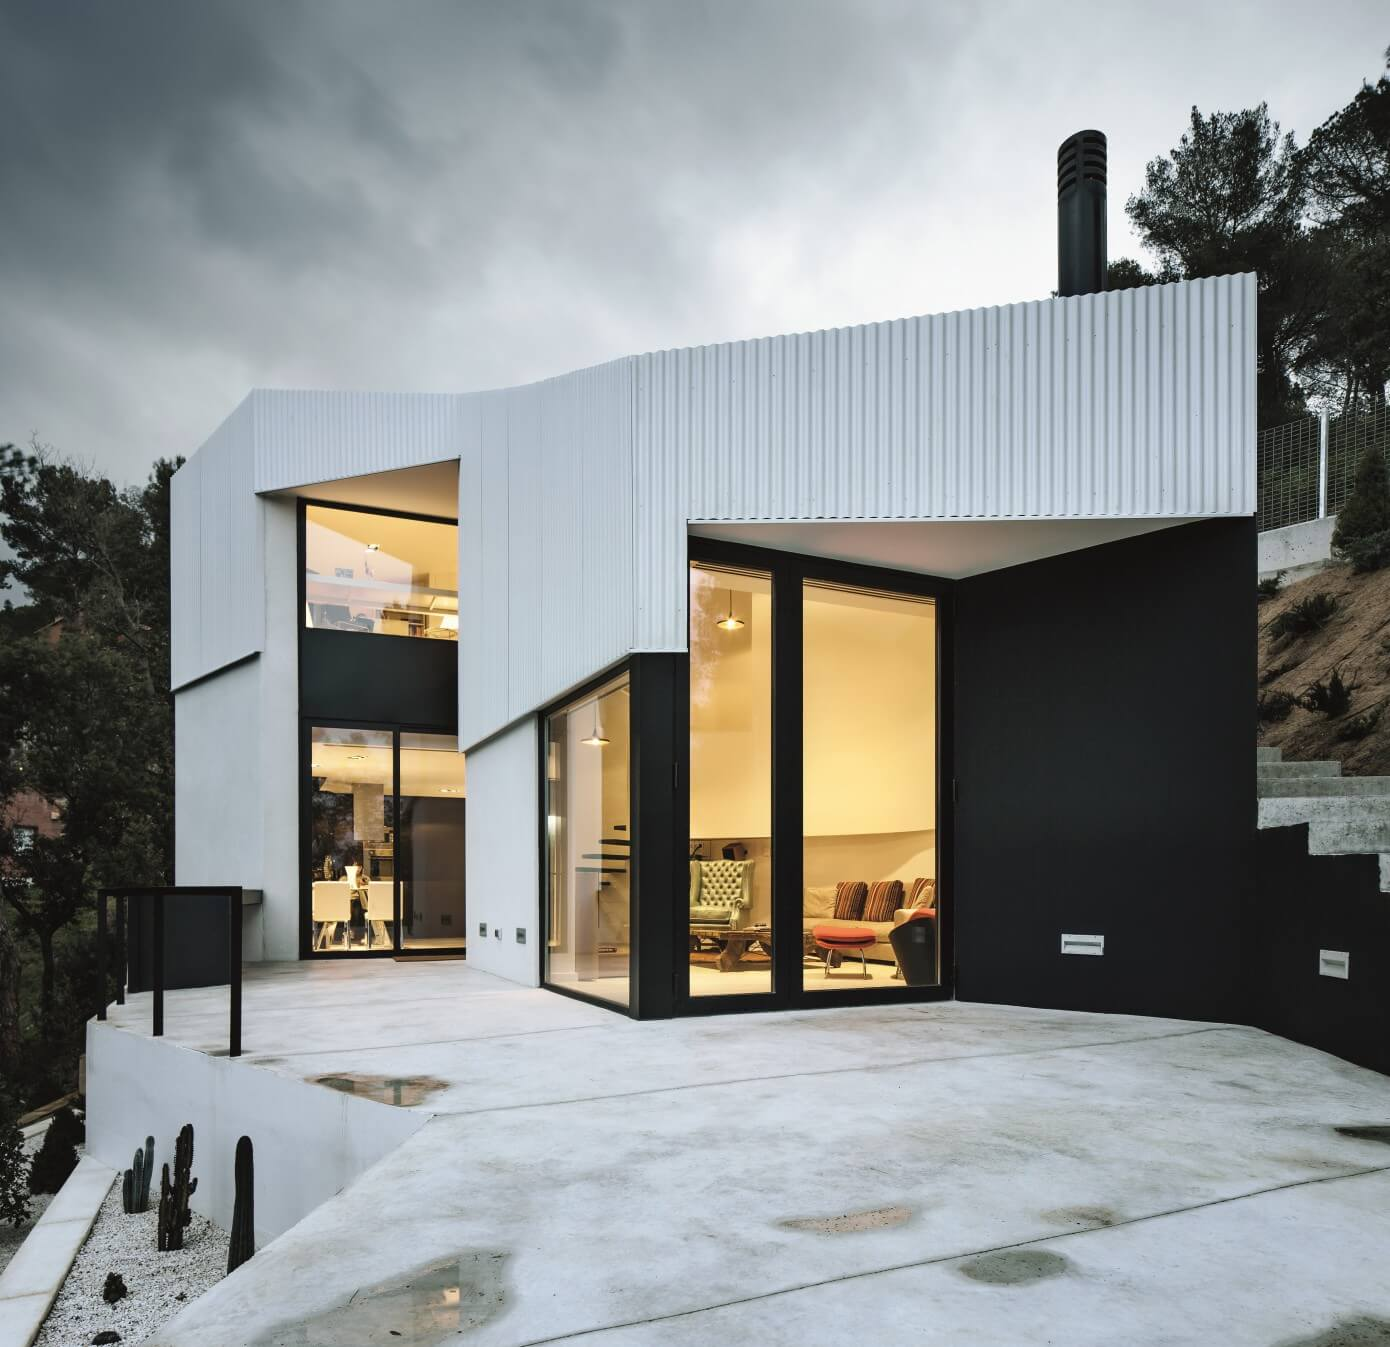 House AT by MIRAG Arquitectura i Gestió